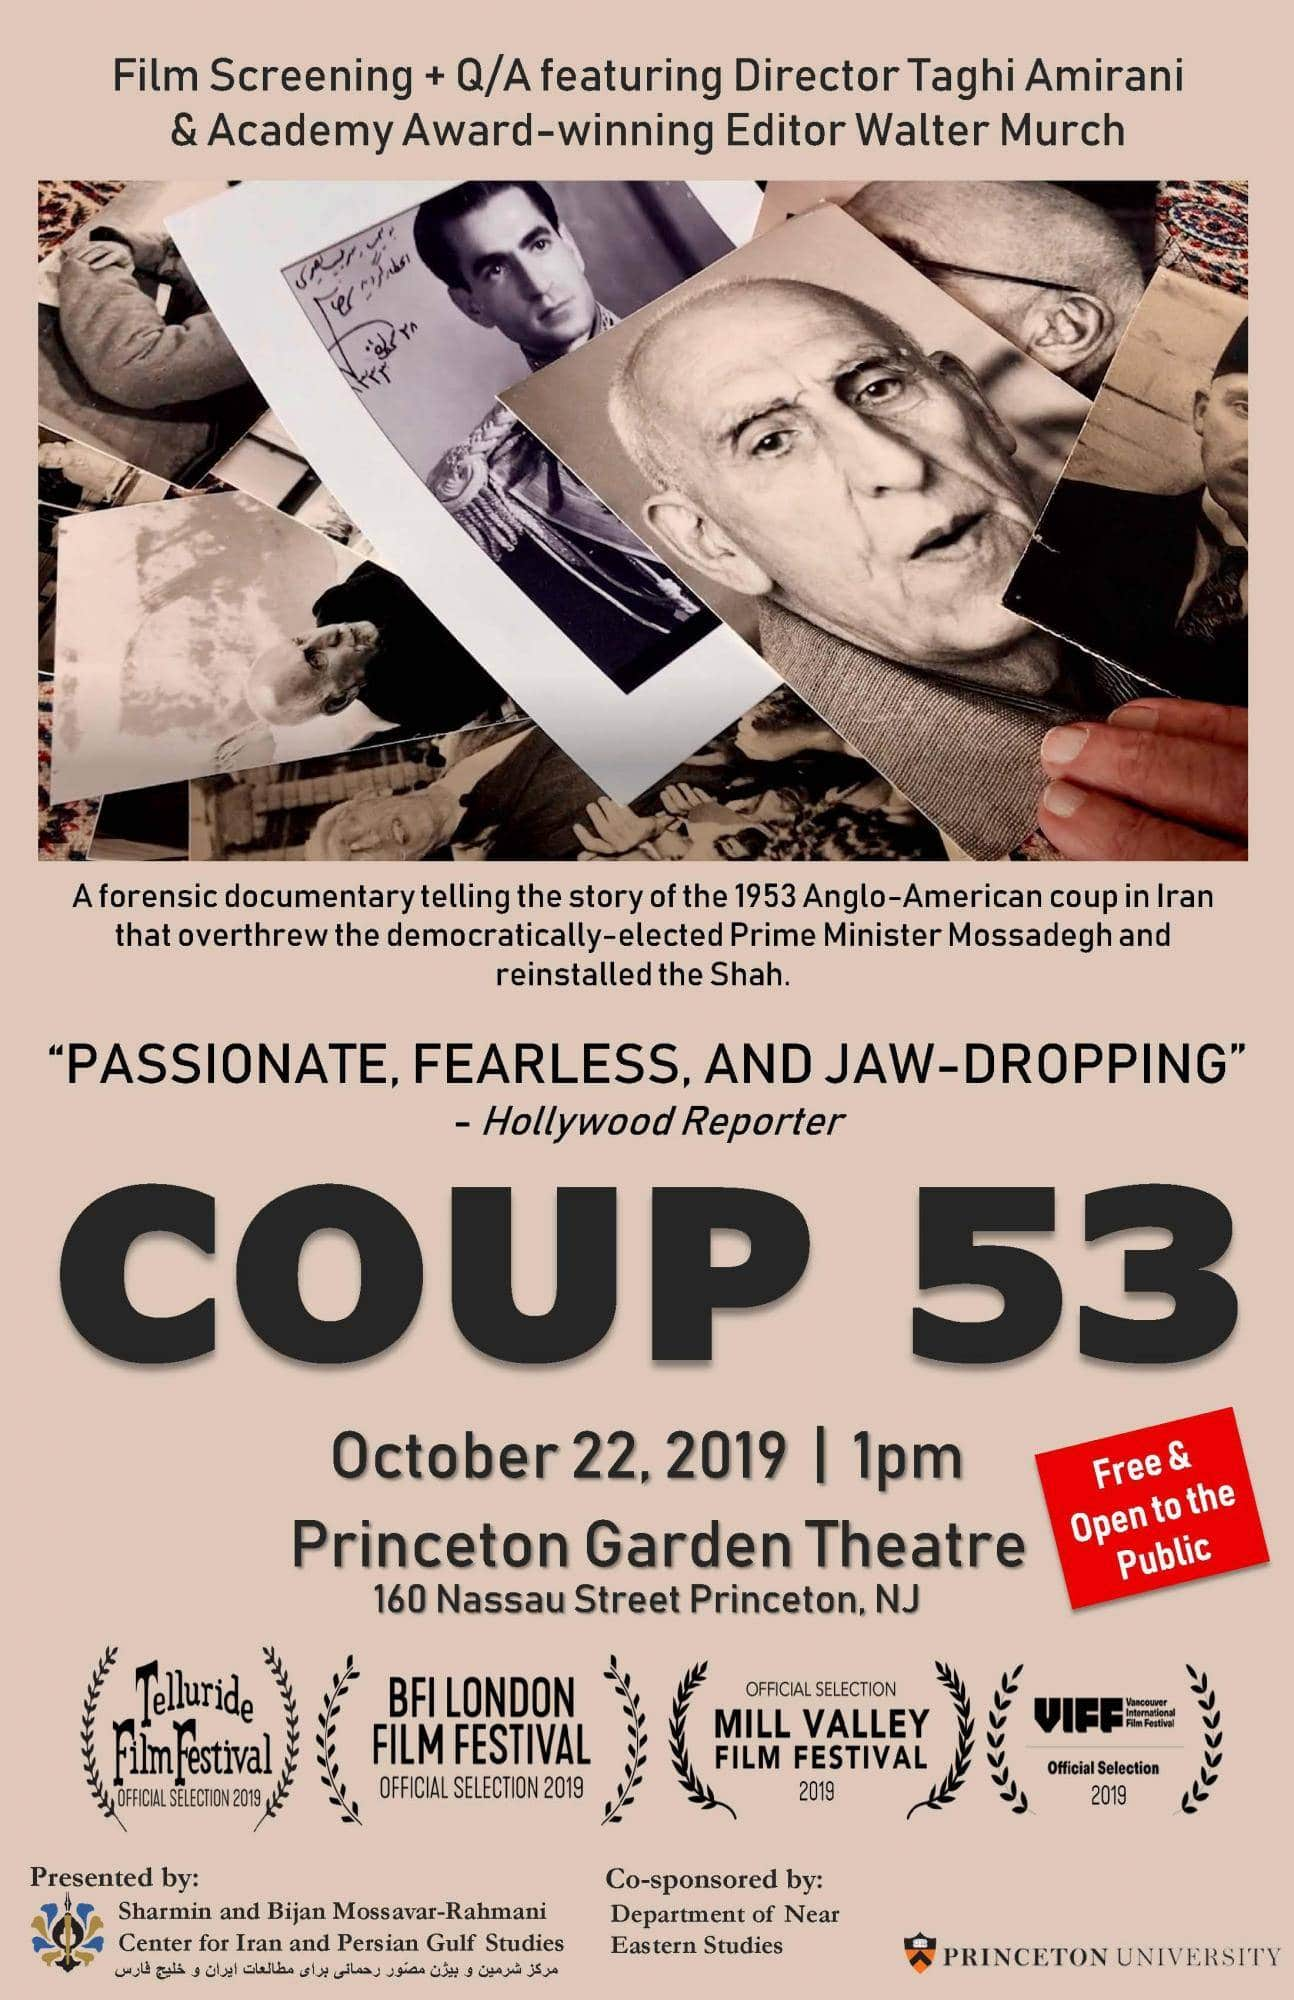 "ART OF THE CUT with Walter Murch, ACE, on editing ""Coup 53"" 8"